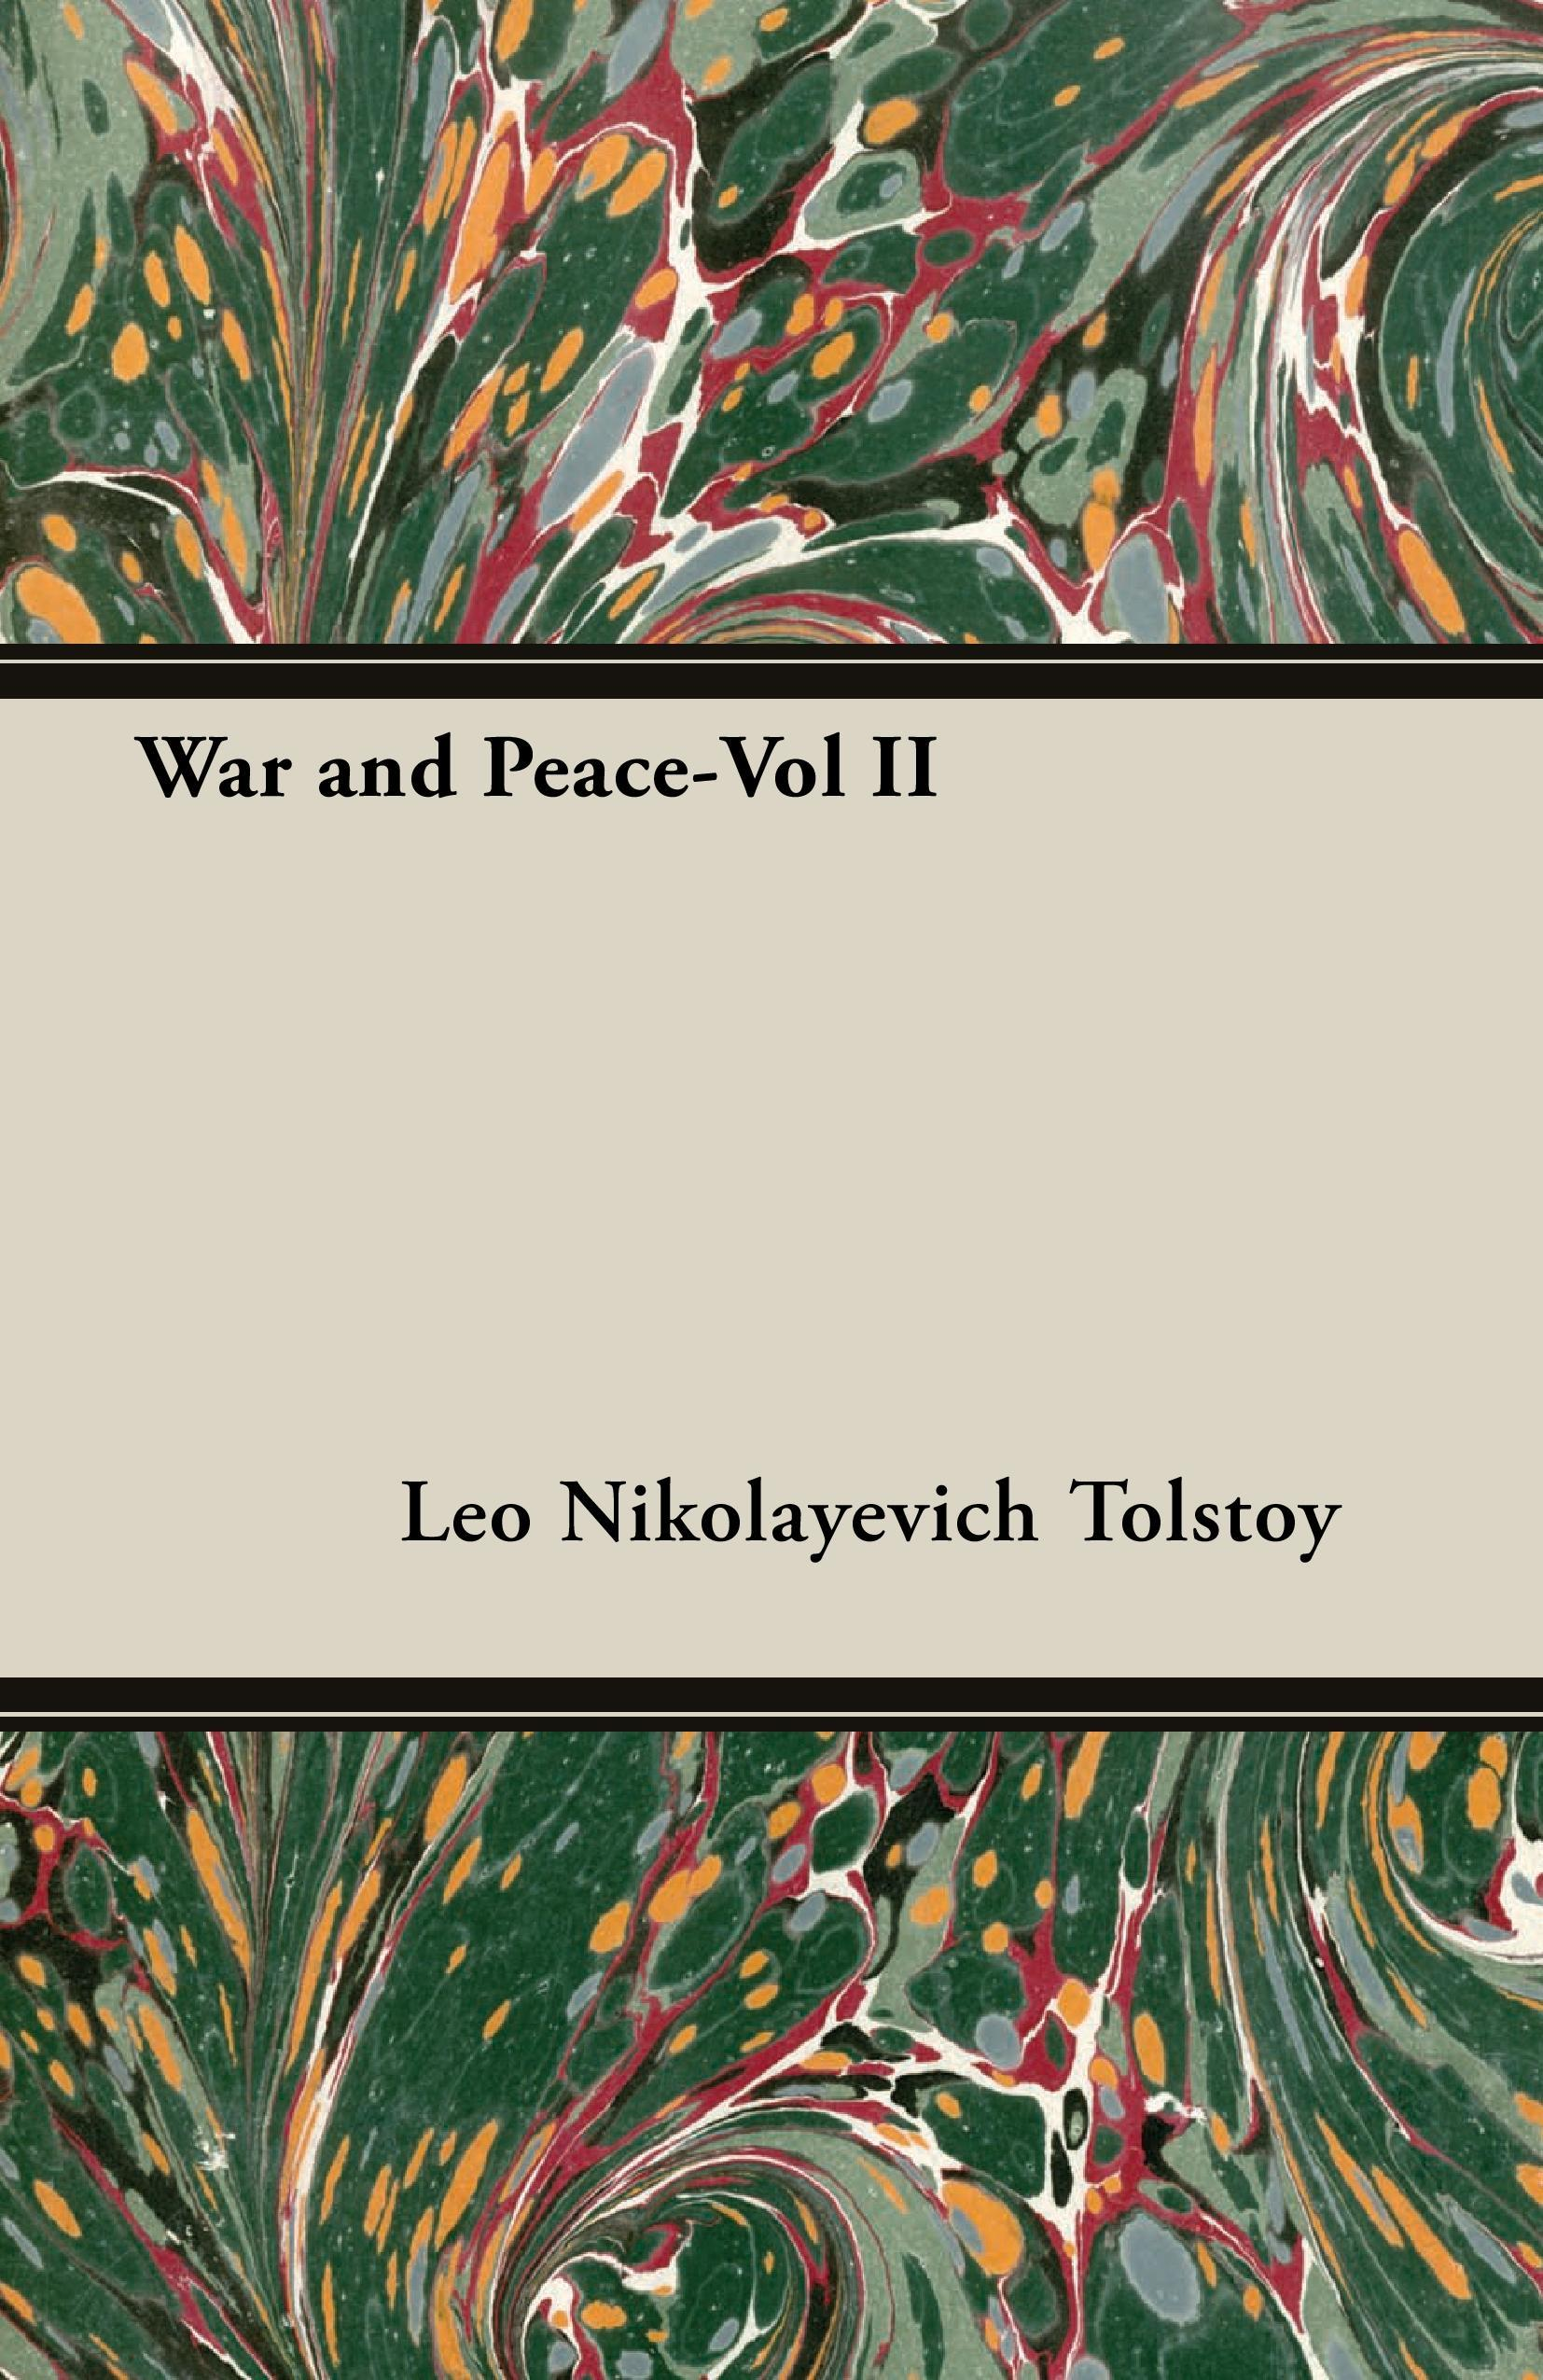 War and Peace-Vol II